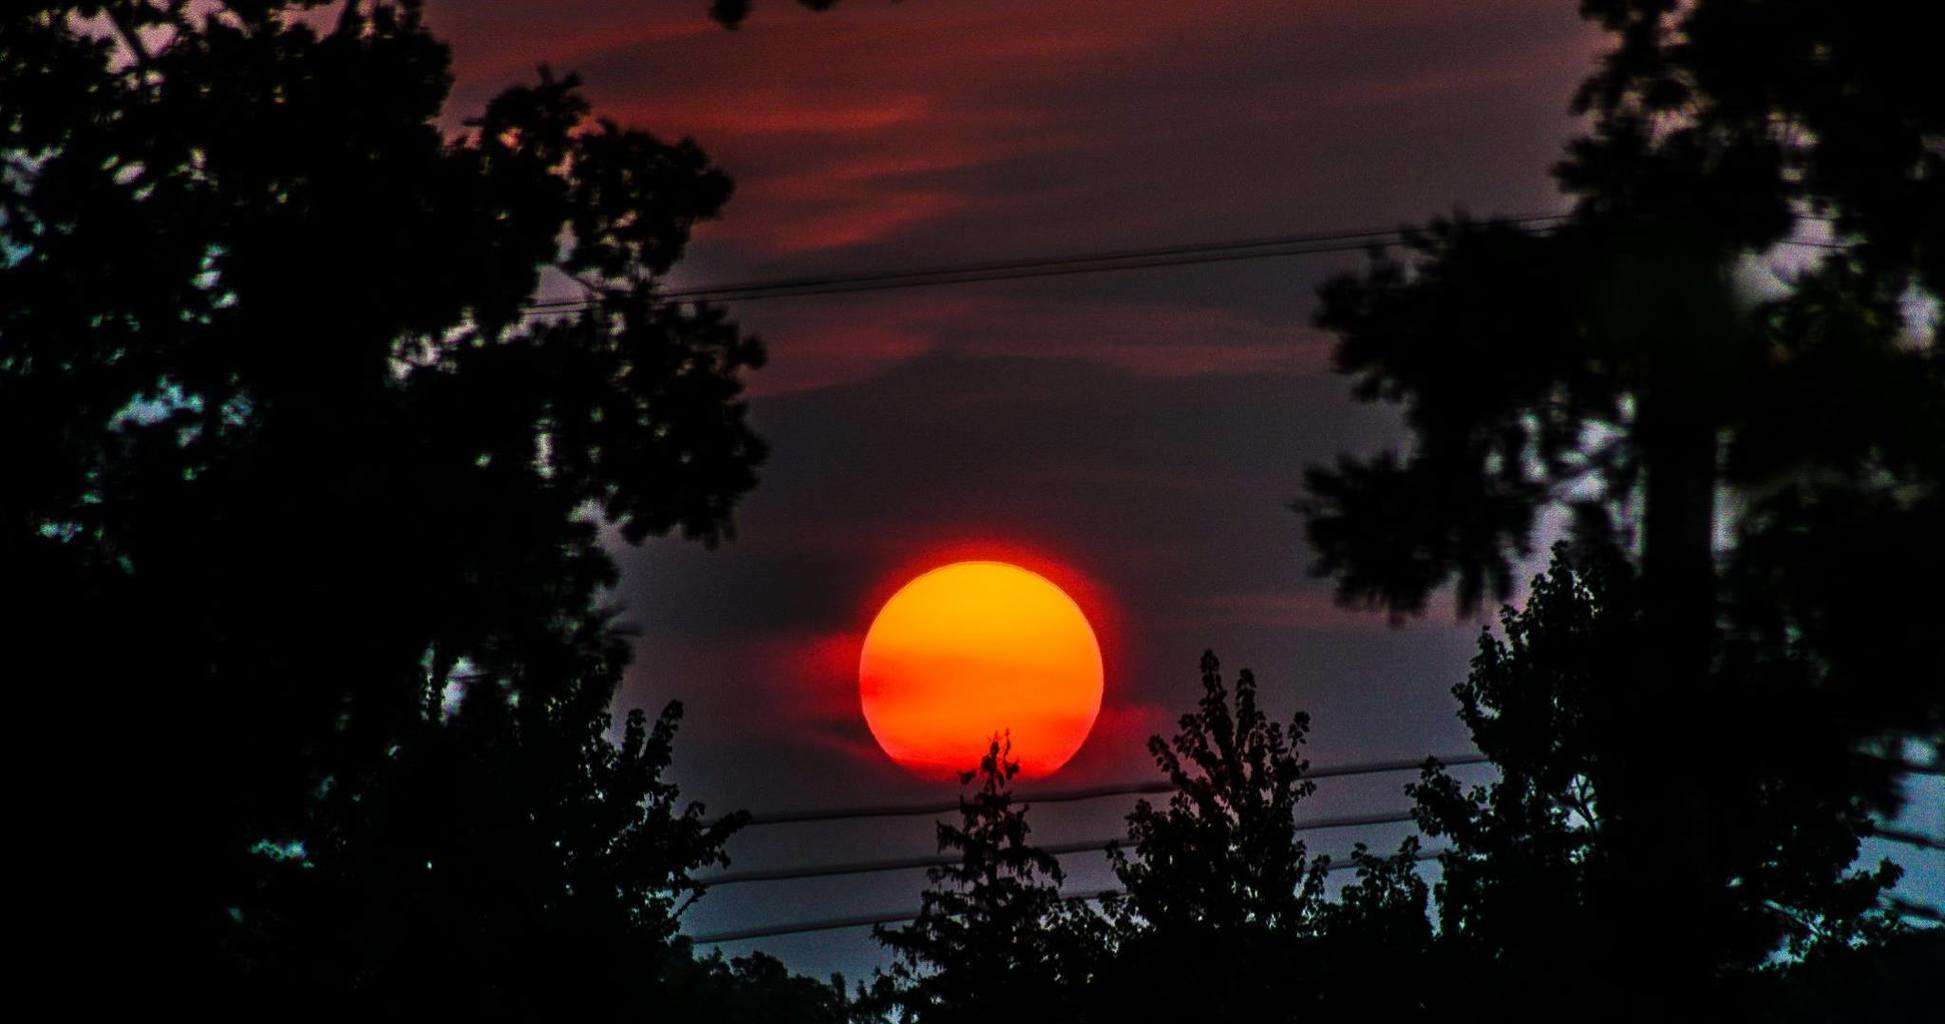 Tonights Sunset out my bedroom window, Southfield, Mi. D5200 300MM 1/800 sec.